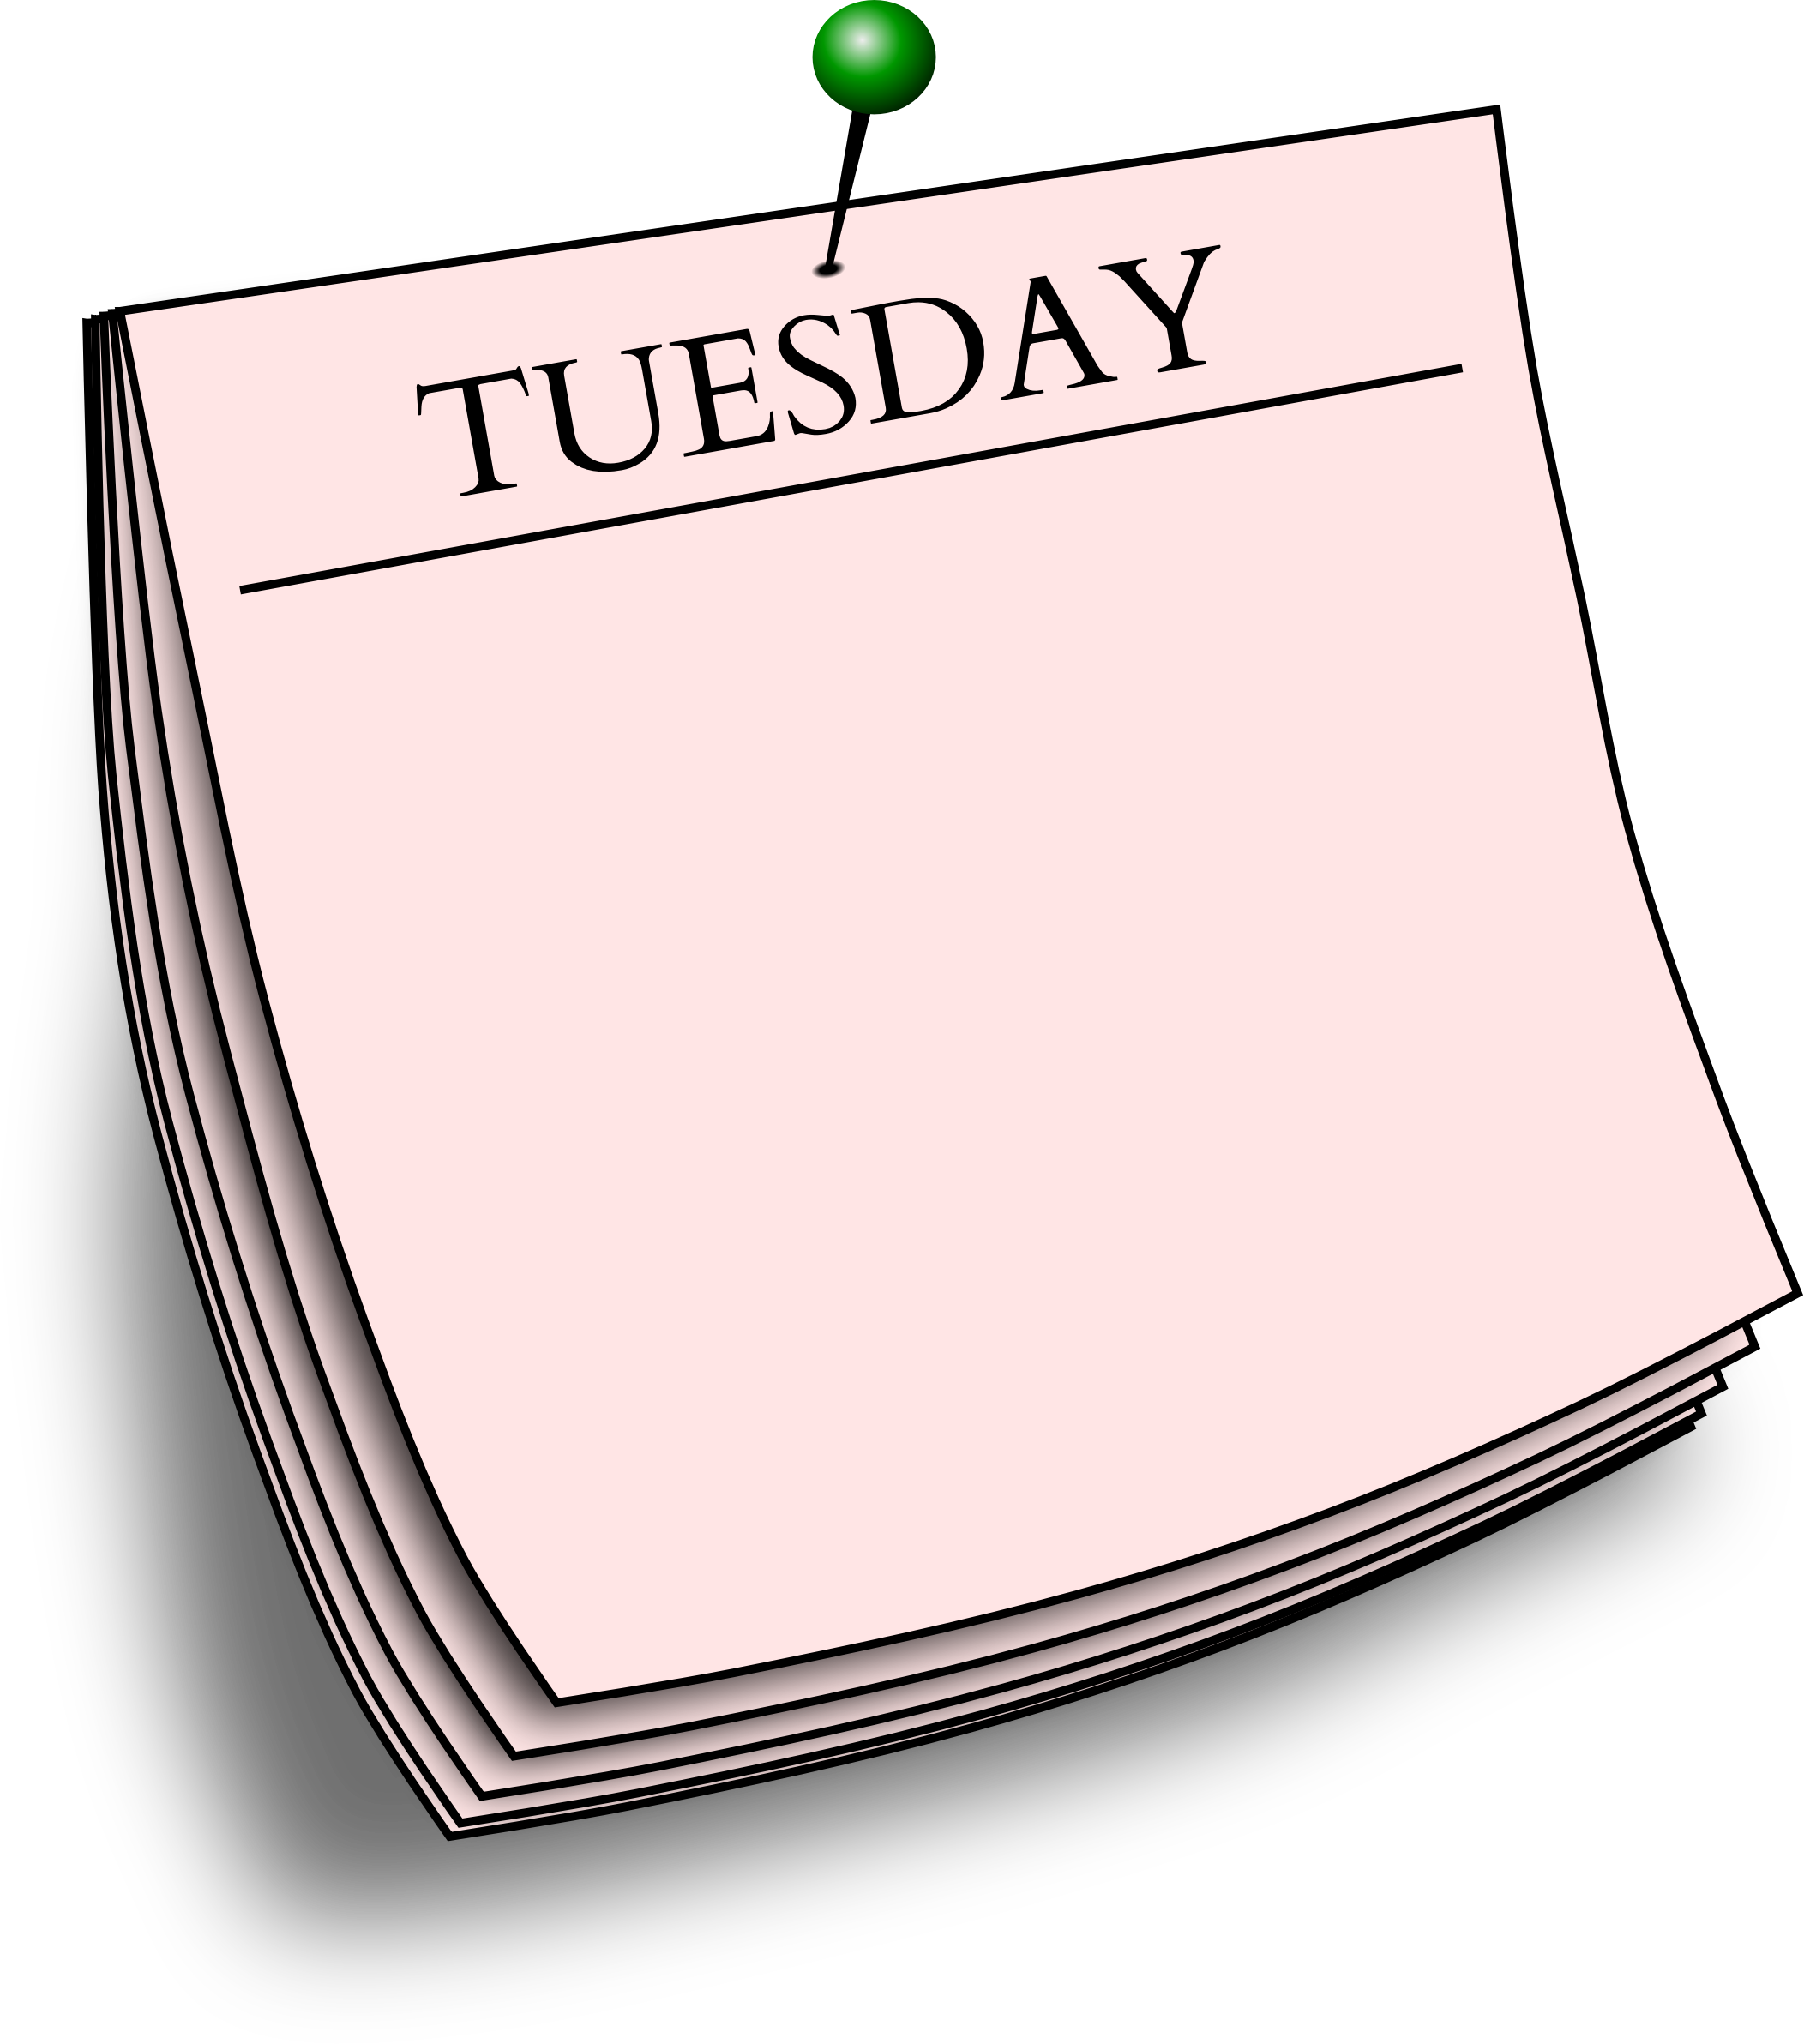 Tuesday clipart. Daily note big image